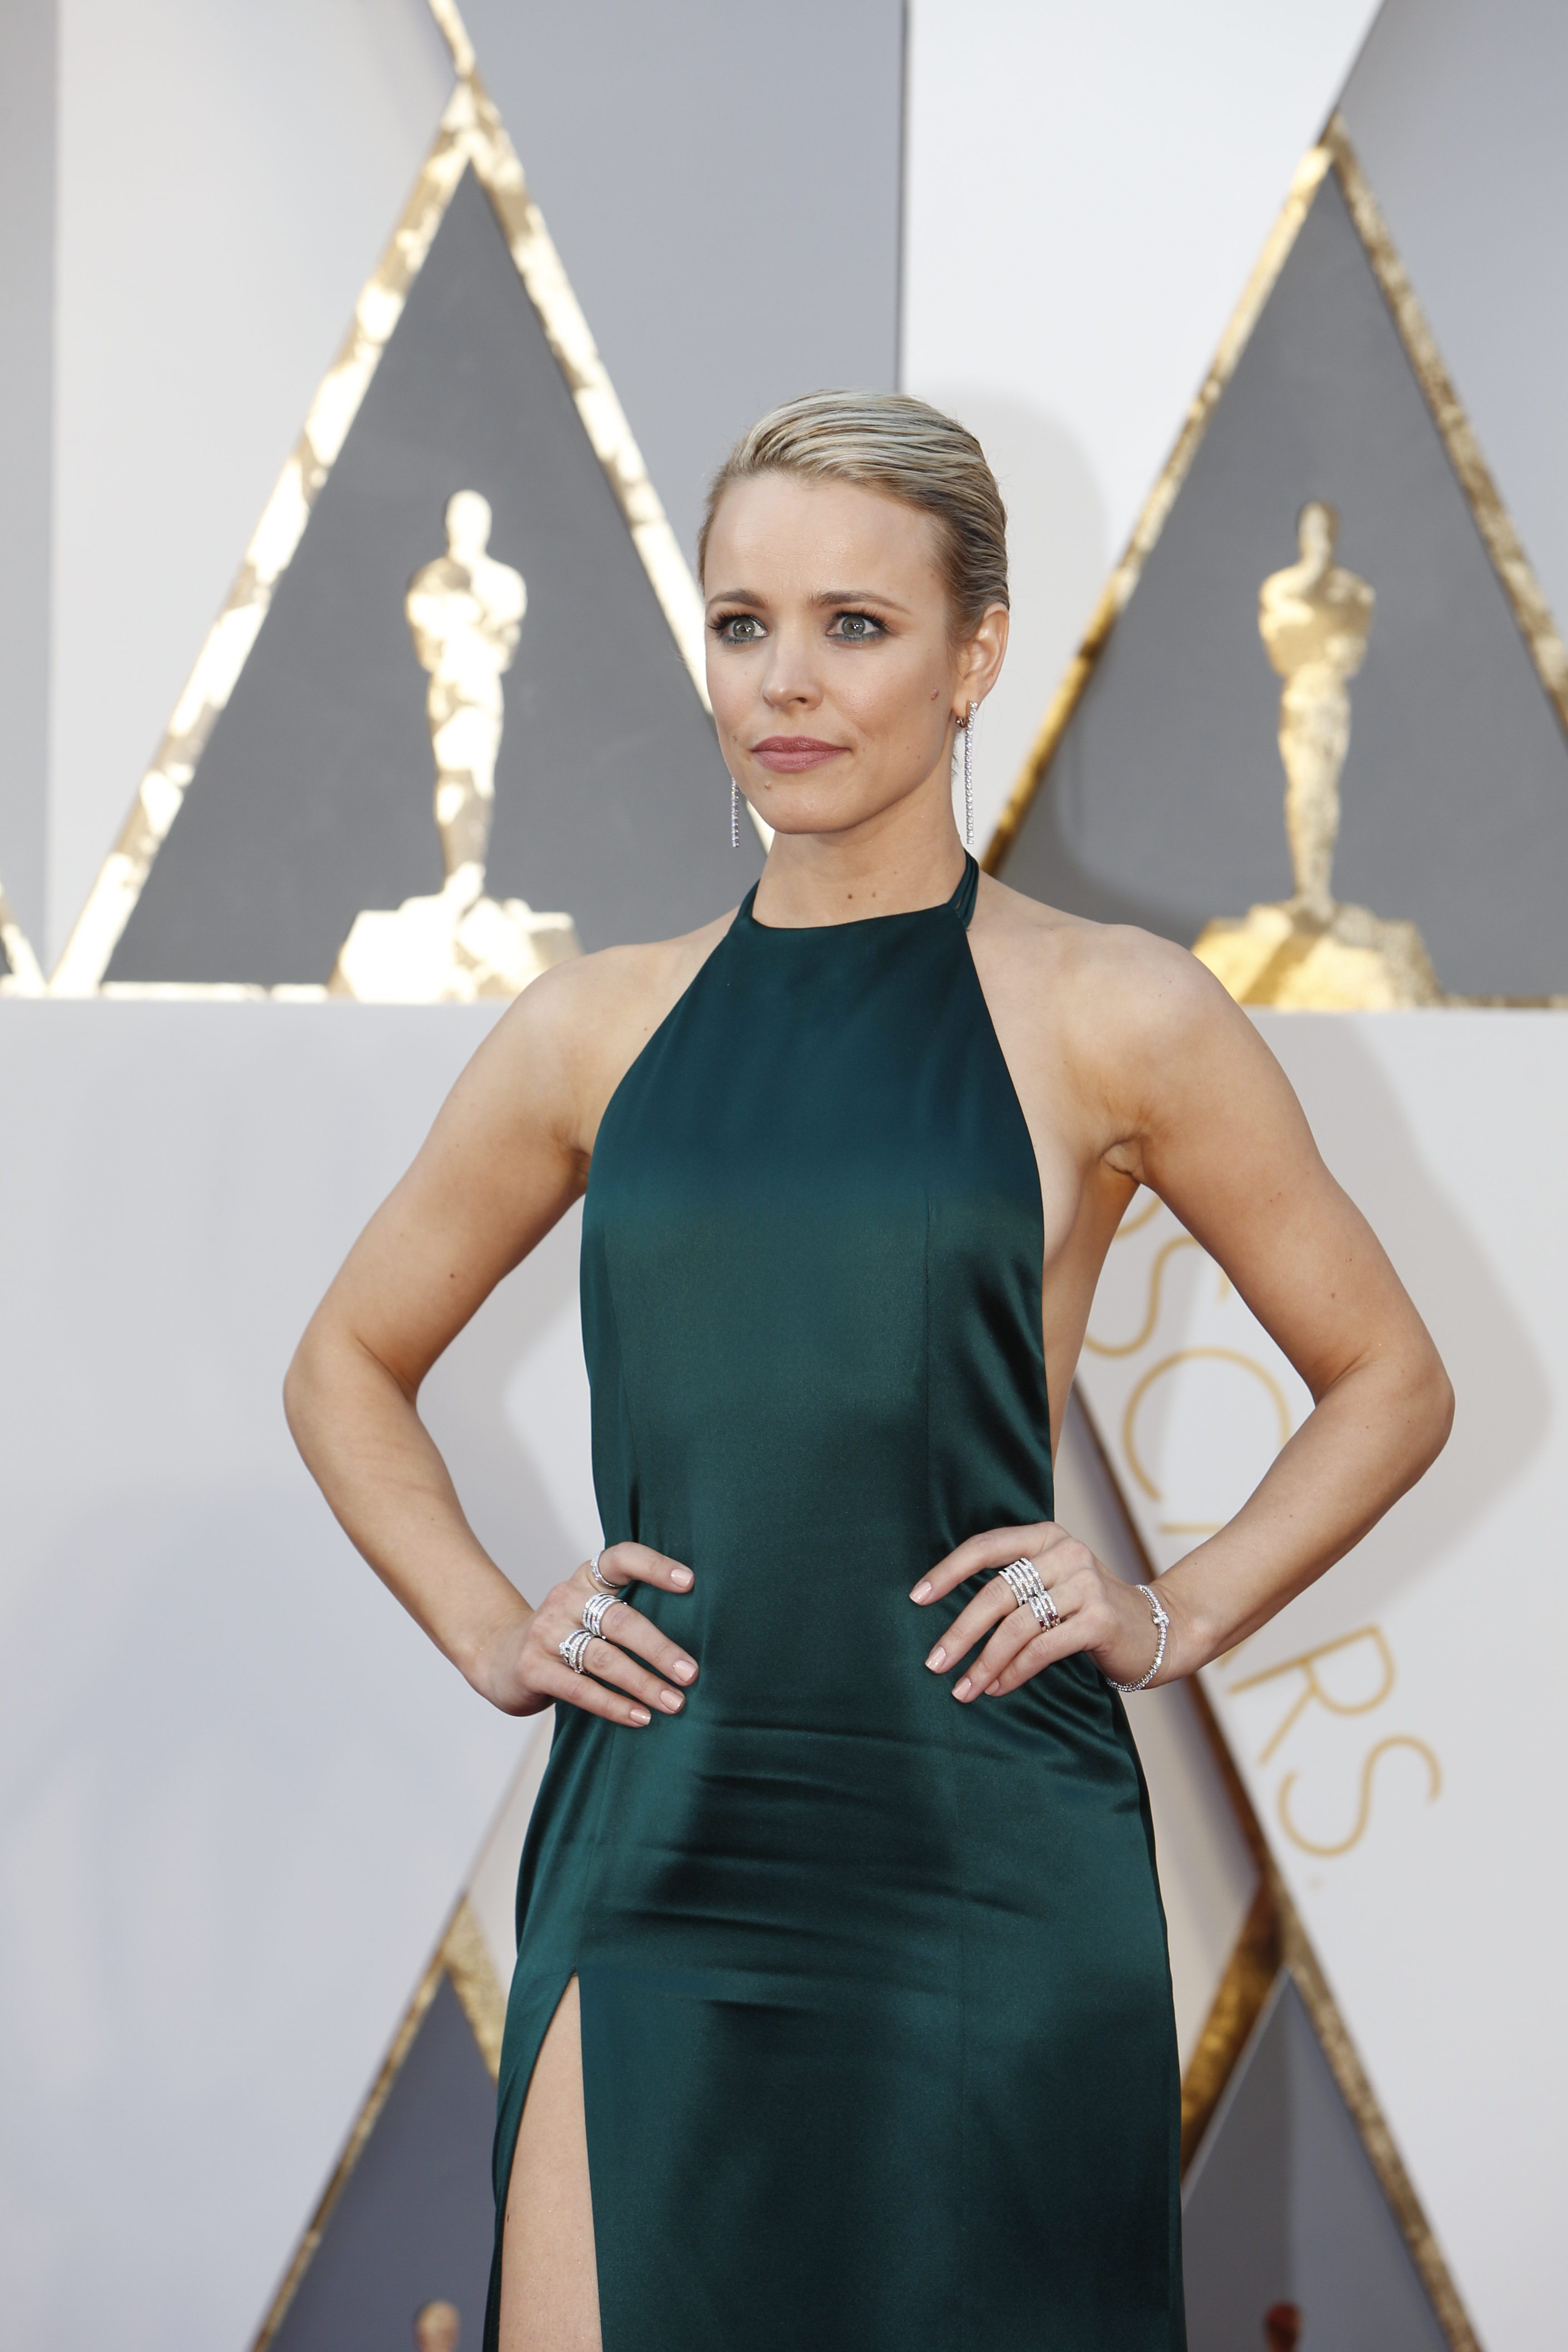 62a4f20d4 Best Dressed From the 2016 Oscars Red Carpet! - Oscars 2016 News ...